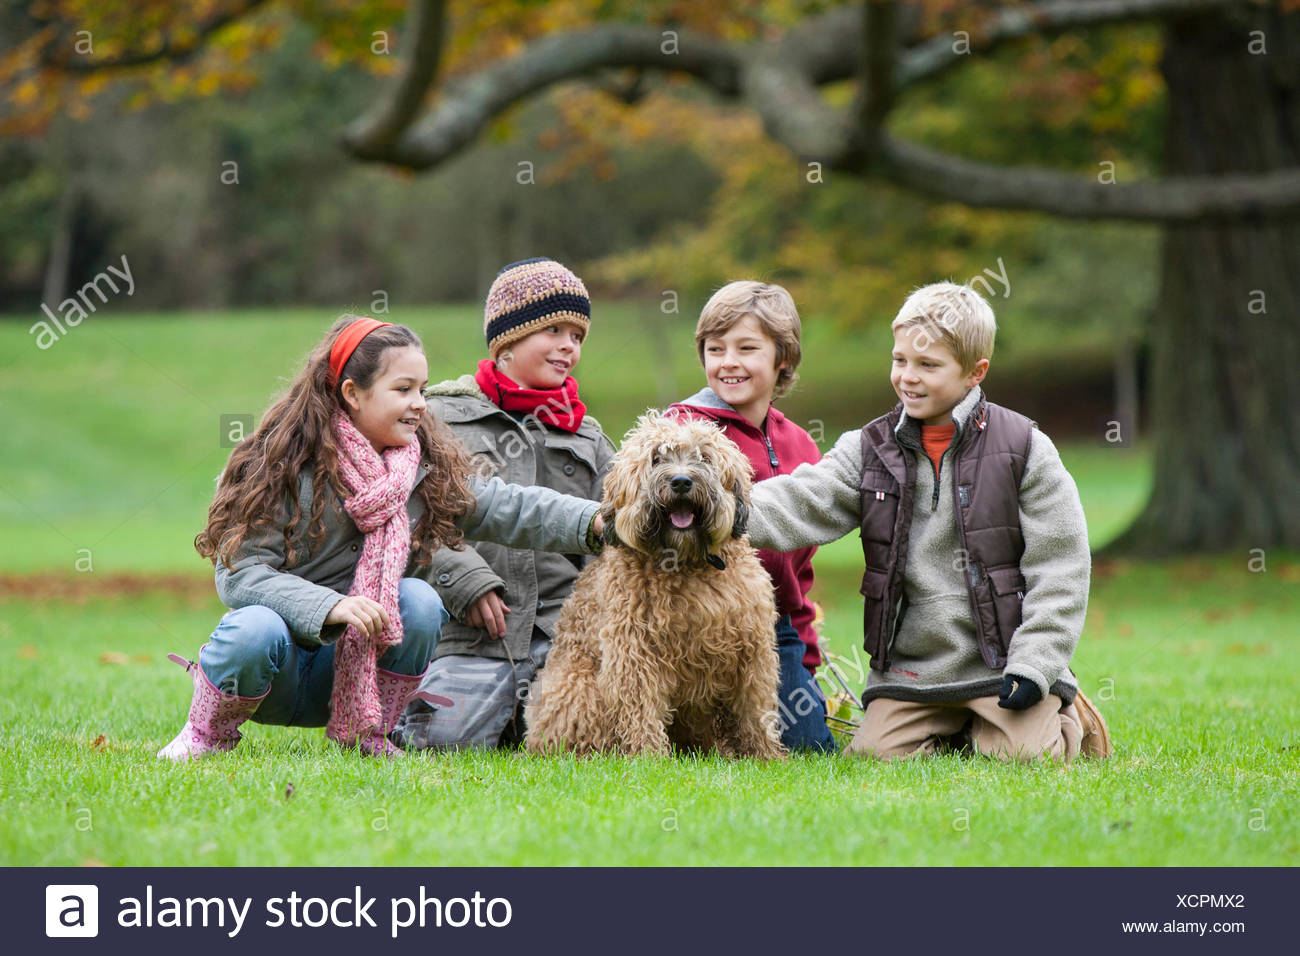 Springerdoodle Stock Photos & Springerdoodle Stock Images - Alamy